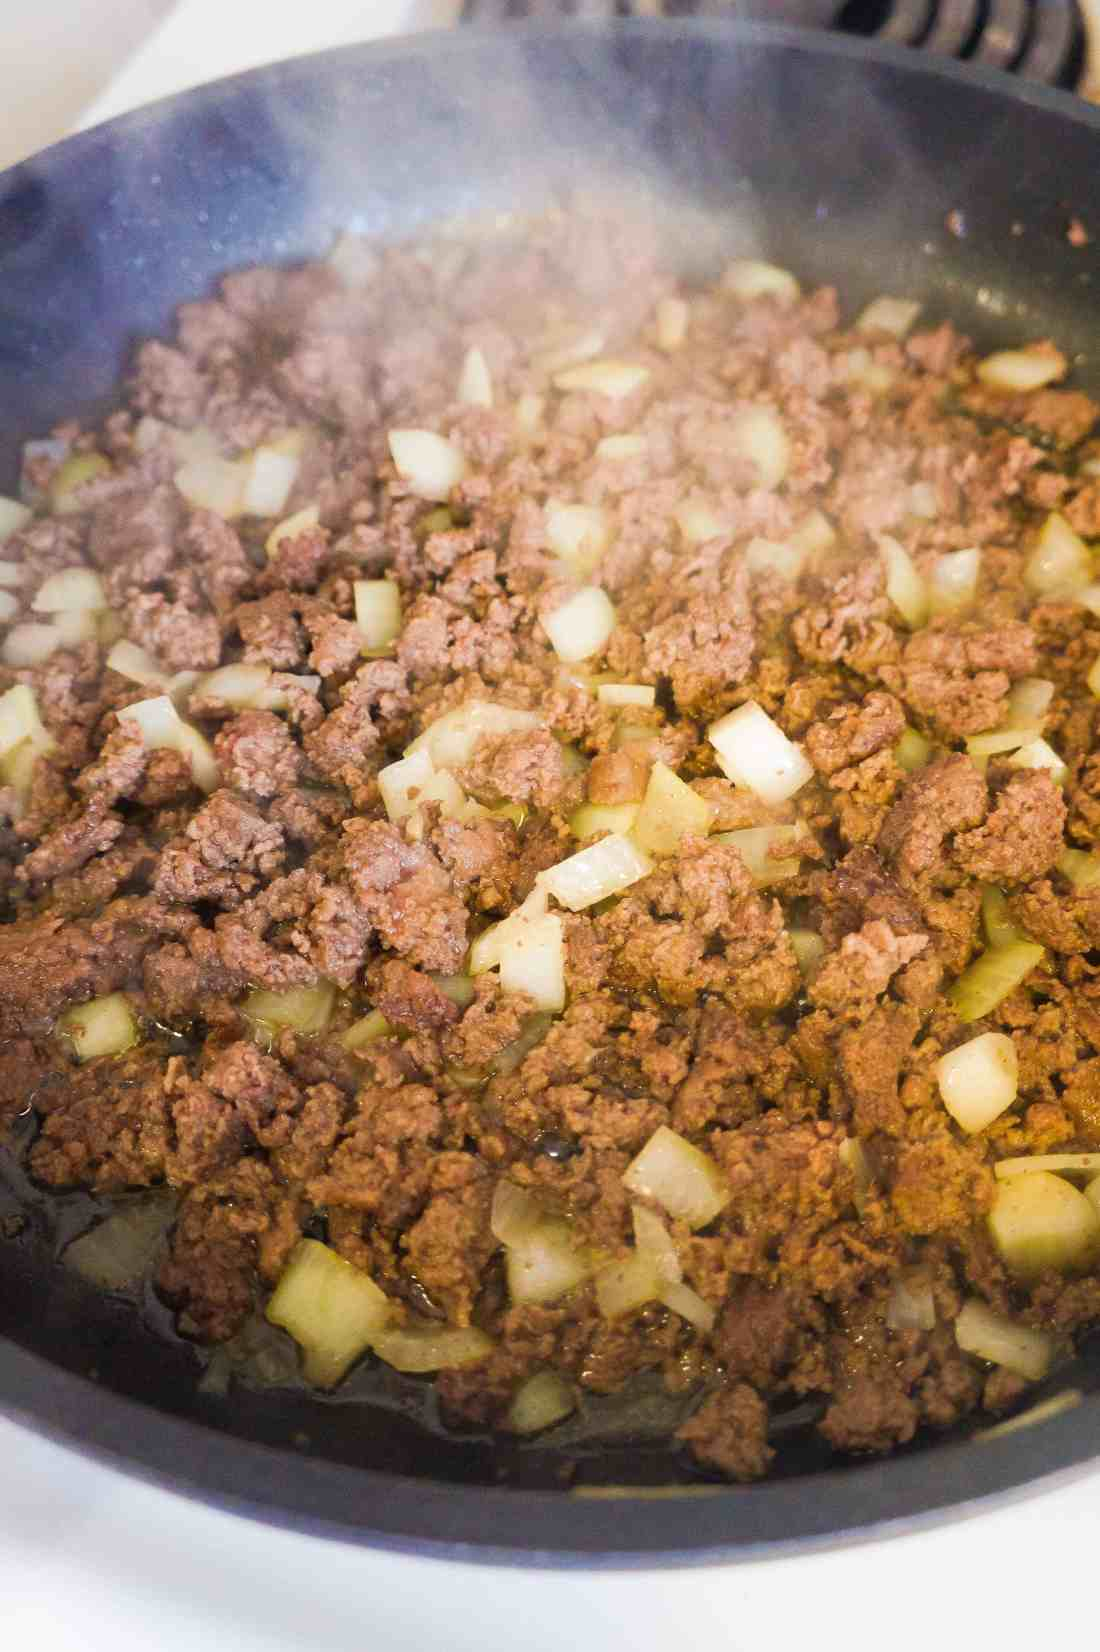 Ground beef and diced onions in frying pan.